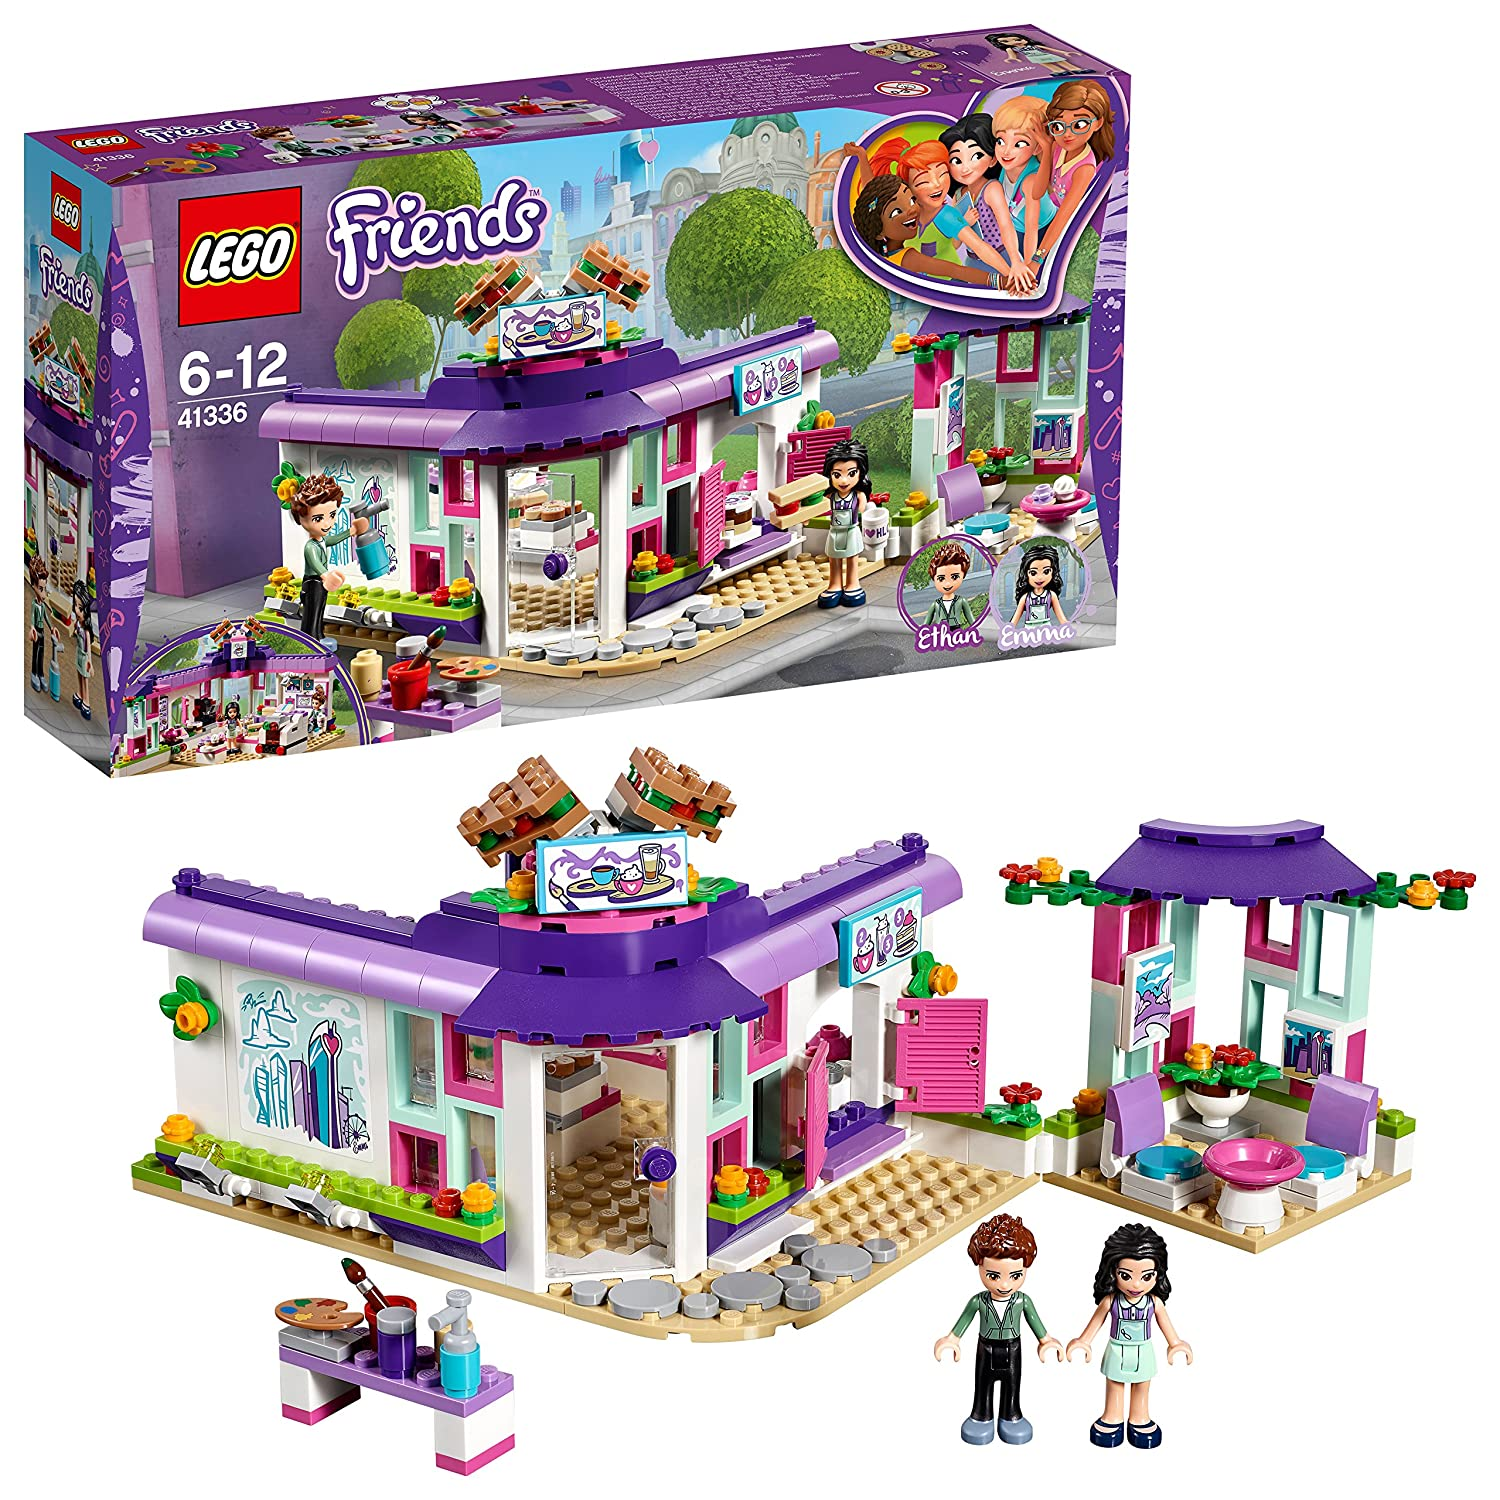 LEGO 41336 Friends Heartlake Emma's Art Café Playset, Emma and Pranksy Mini Dolls, Build and Play Fun Toys for Kids Lego Uk Limited